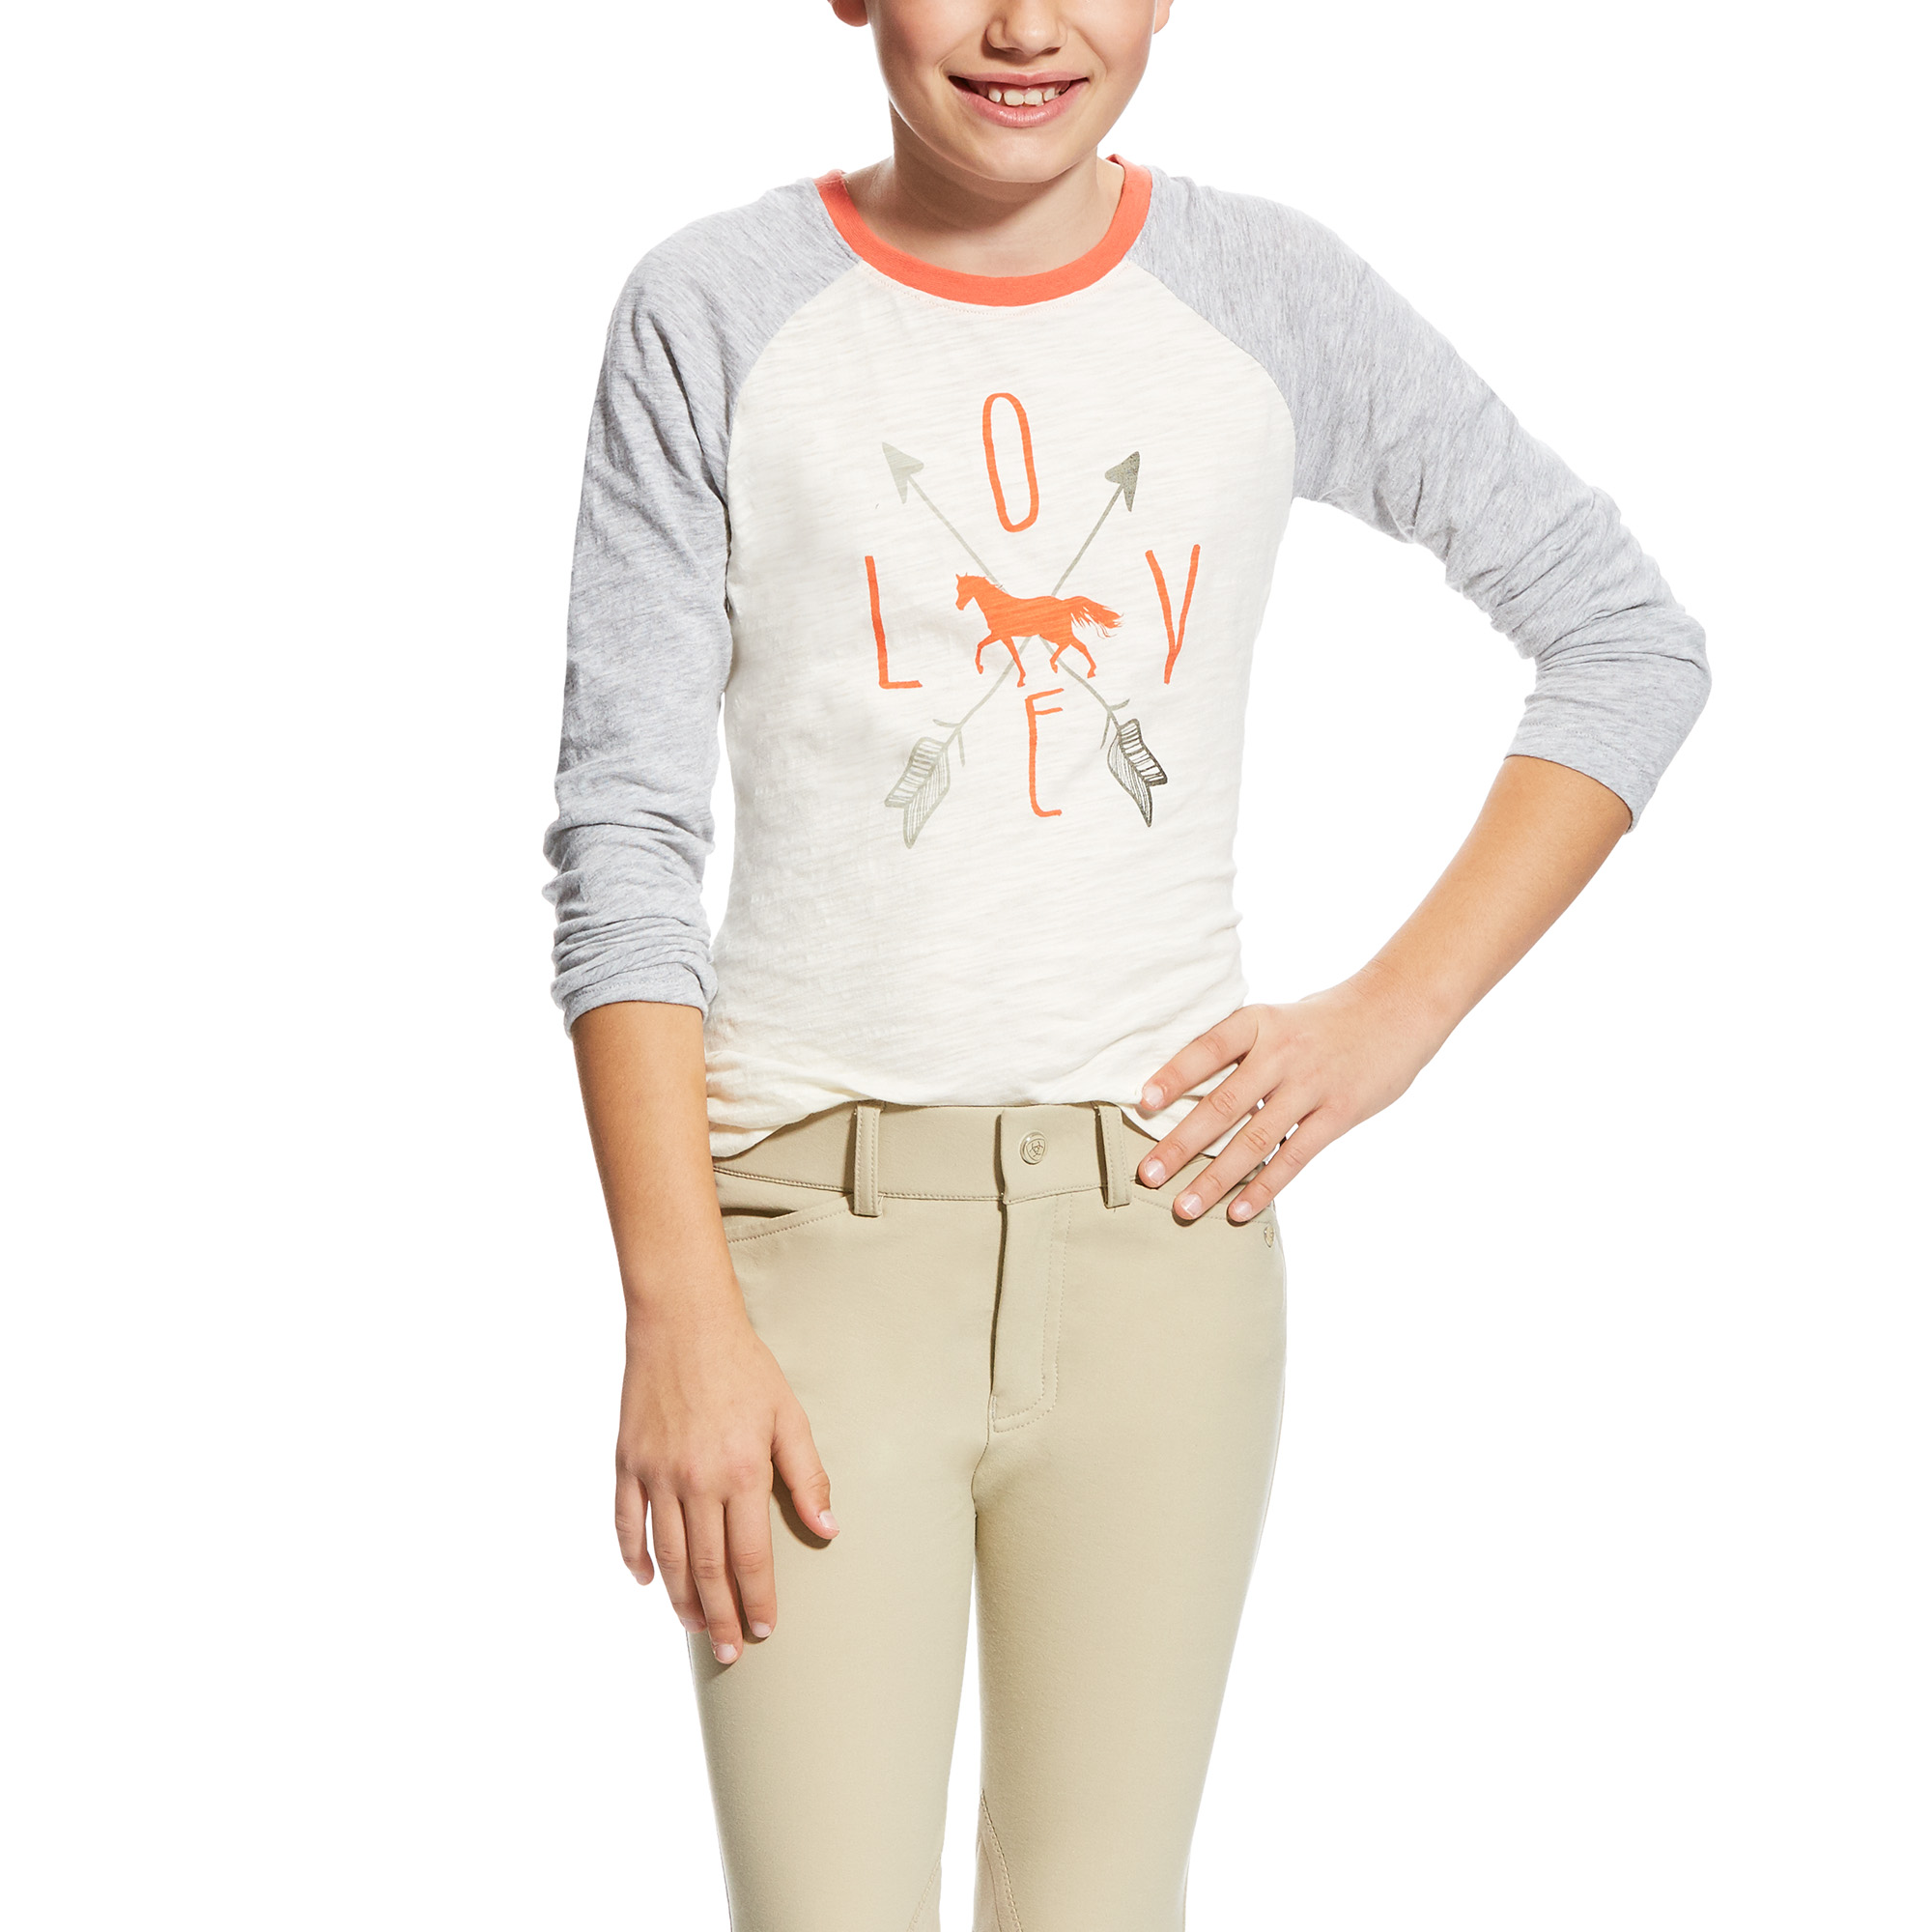 Cupid Tee from Ariat